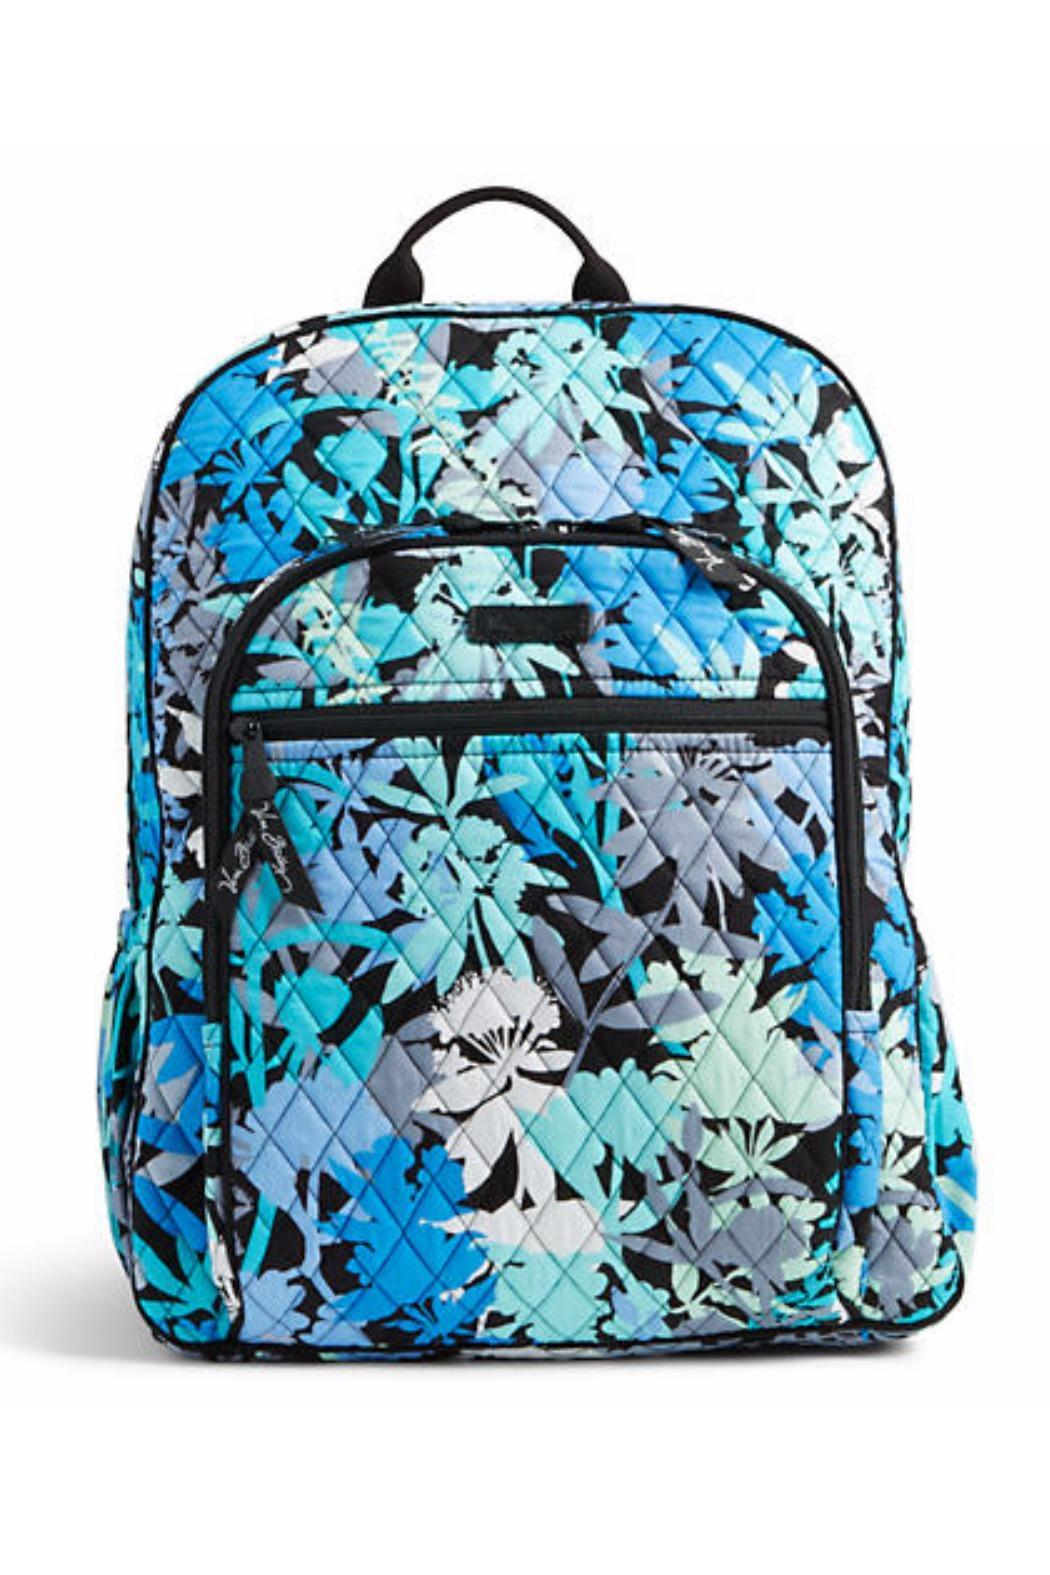 Vera Bradley Campus Backpack Camofloral From New York By Let S Bag